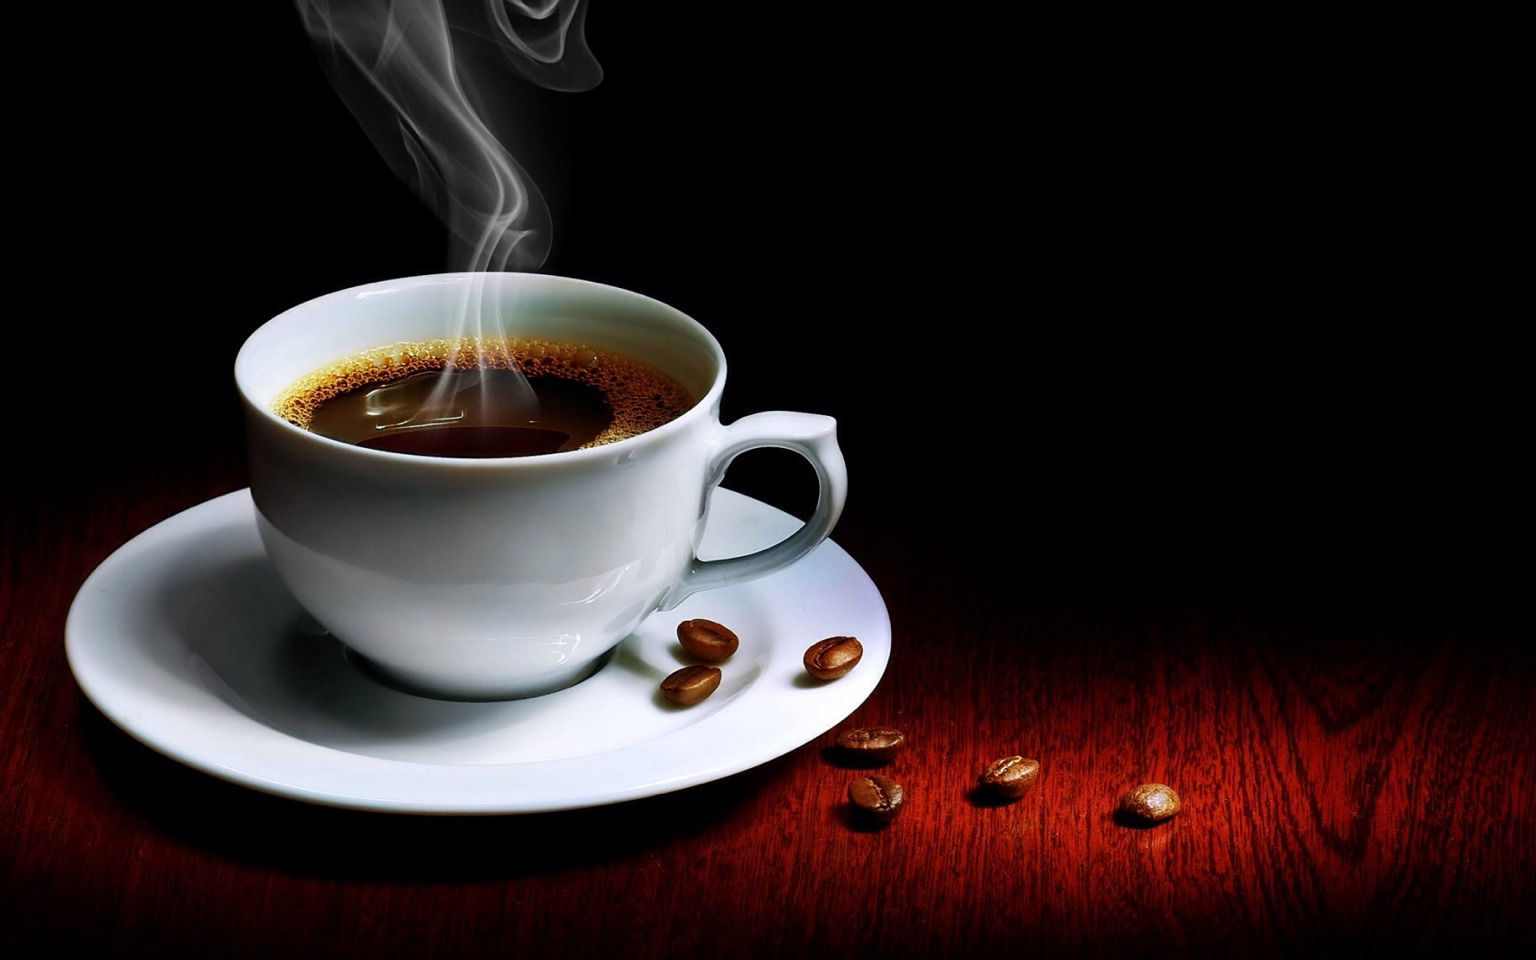 No one can understand the truth until he drinks of coffee's frothy goodness. ~Sheik Abd-al-Kadir